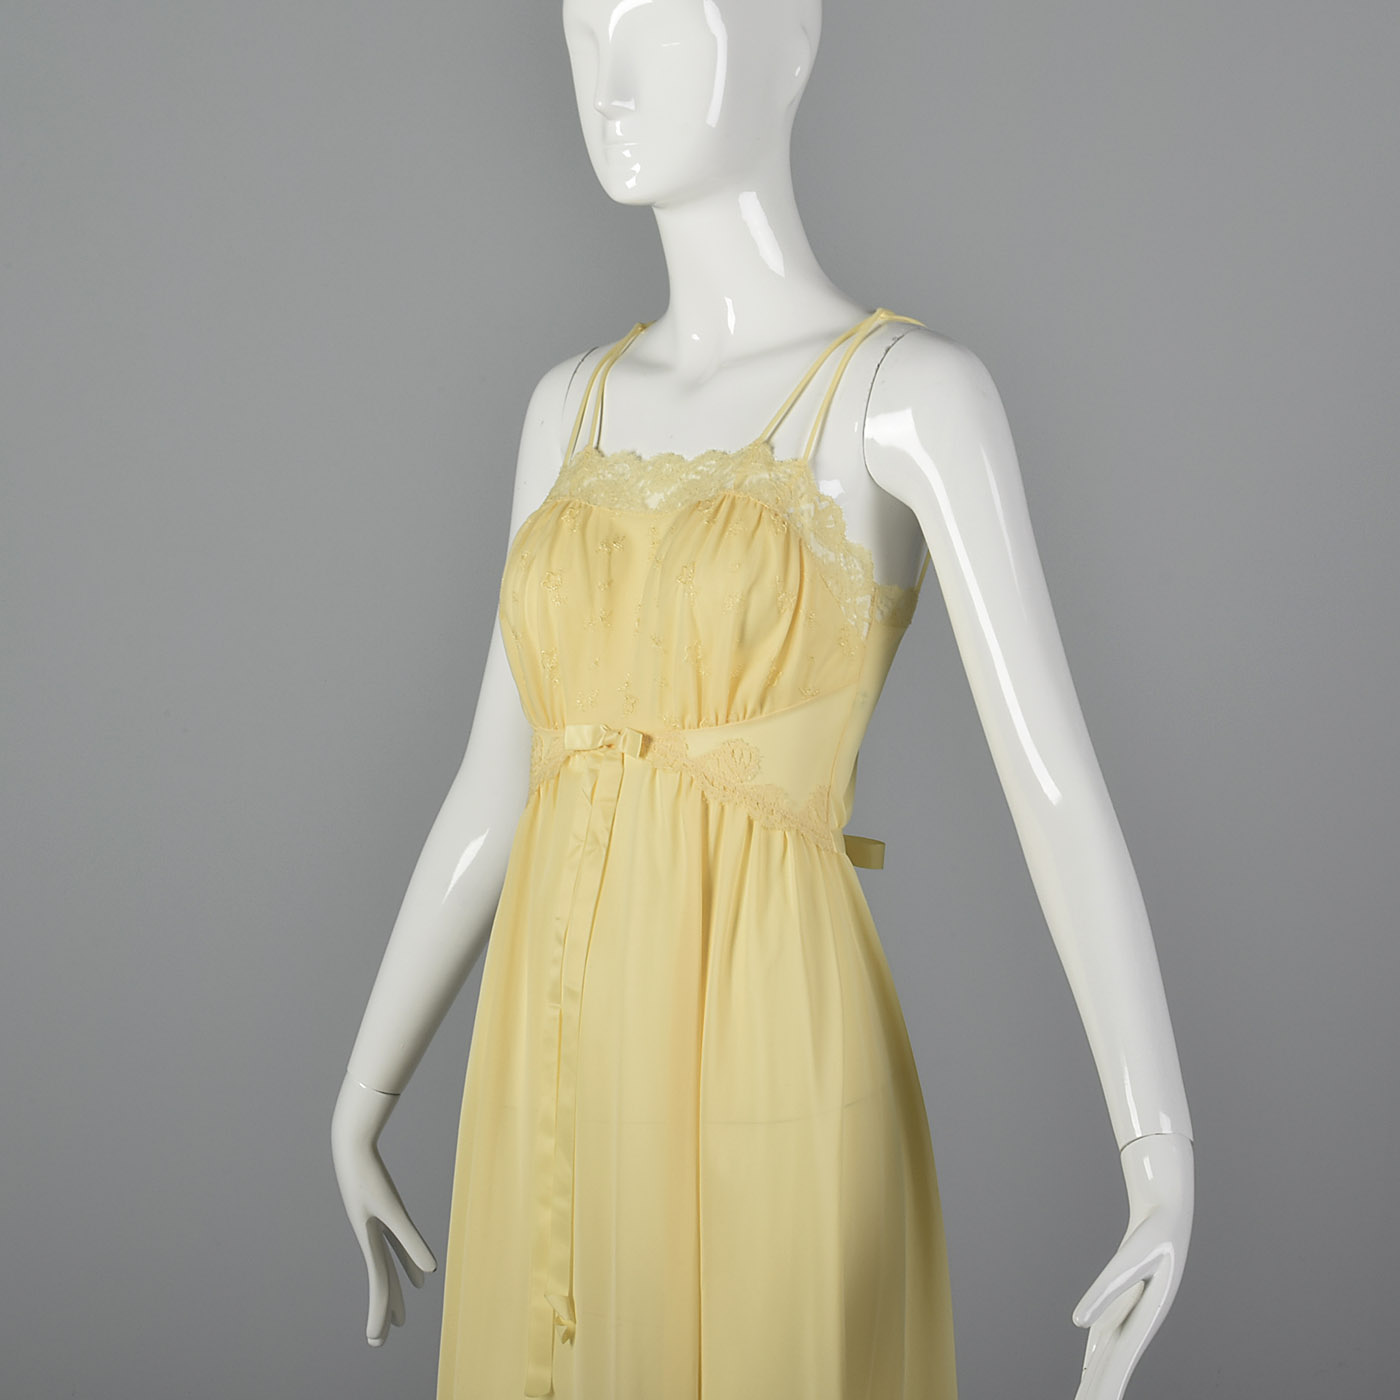 1997fafadf XS 1950s Yellow Sleeveless Nightgown Tie Back Waist Lace Trim Sleepwear 50s  VTG